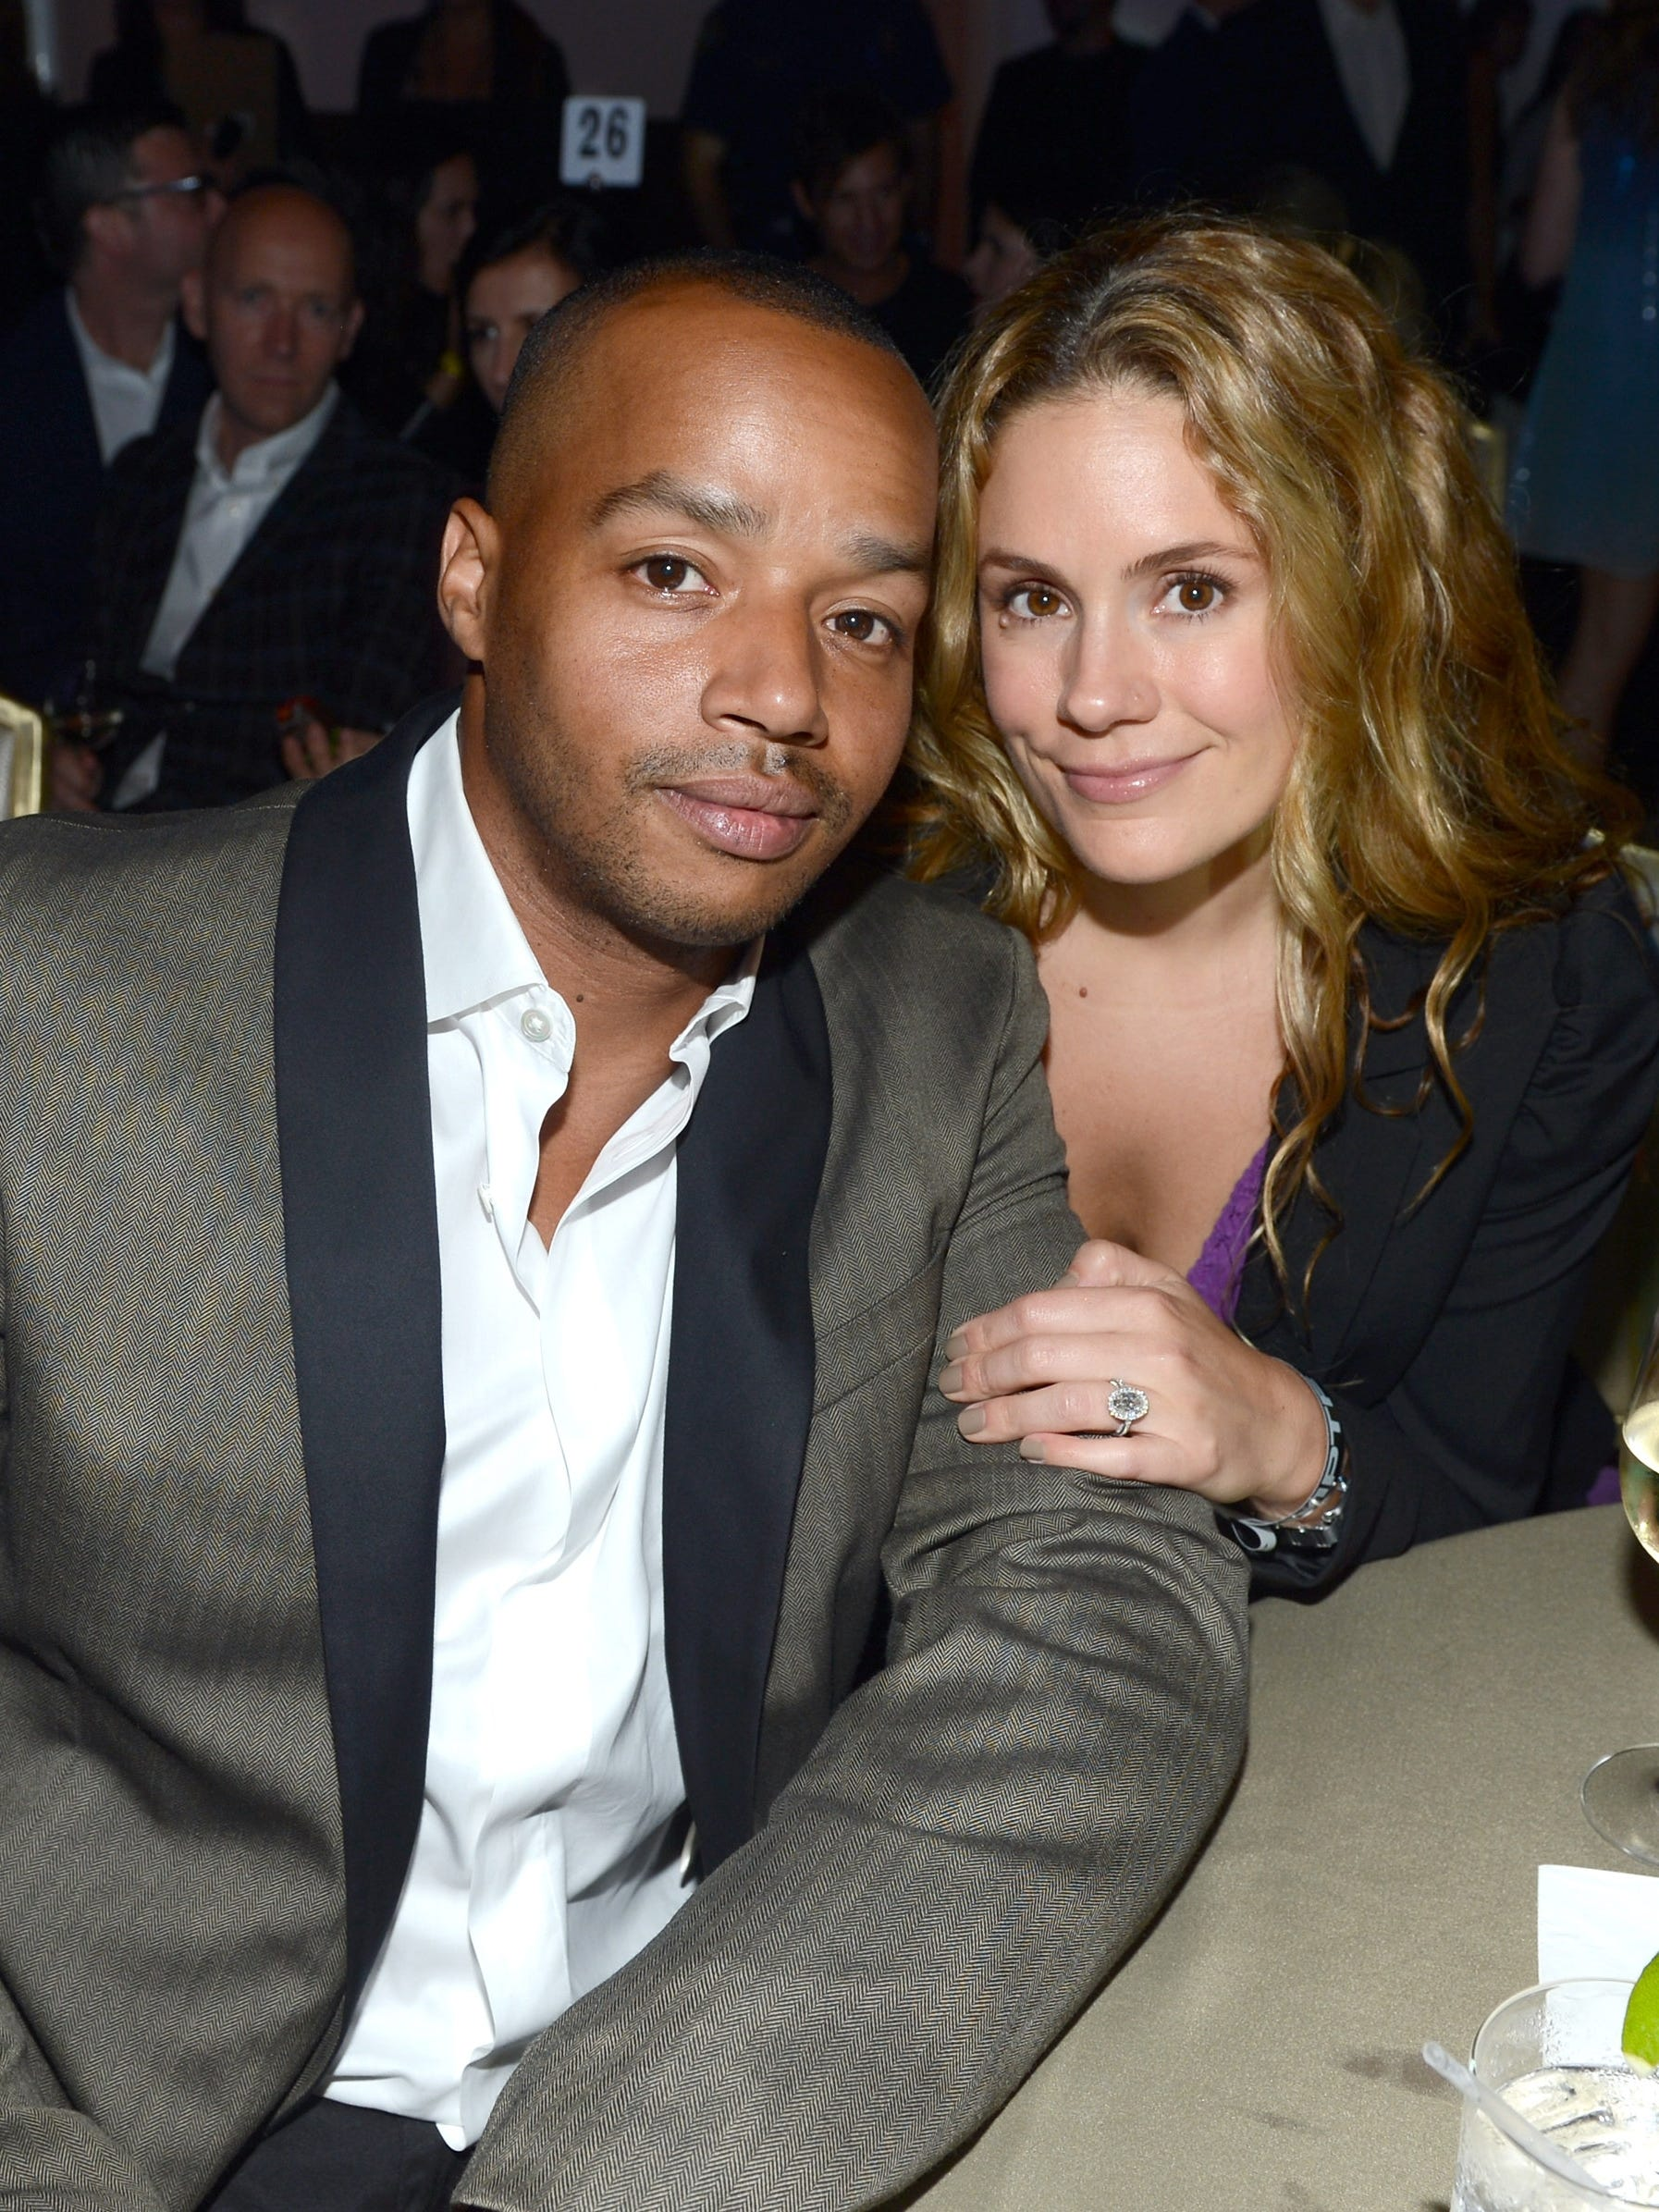 Donald faison dating cacee